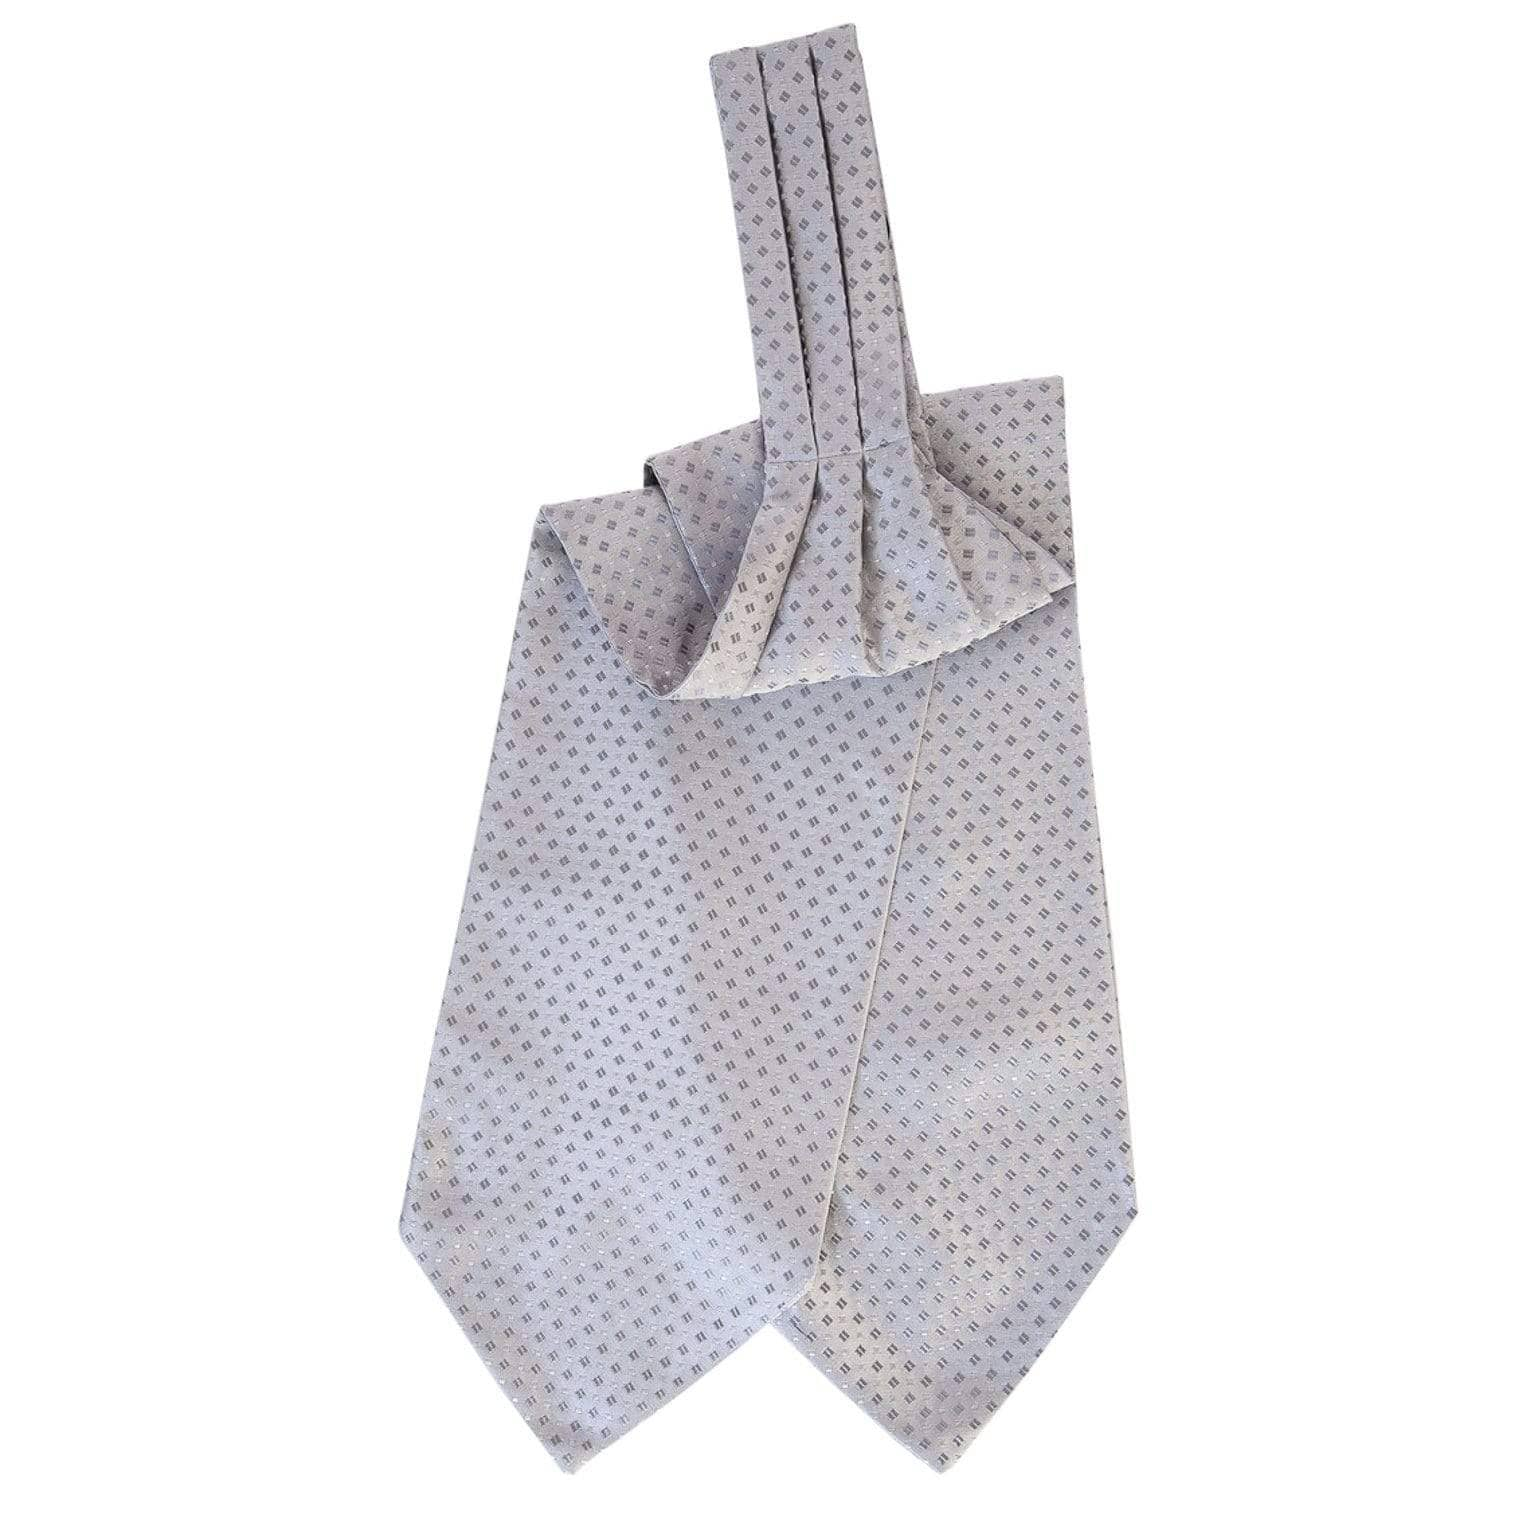 Silver Ascot Tie - Handmade in Italy - Woven Design